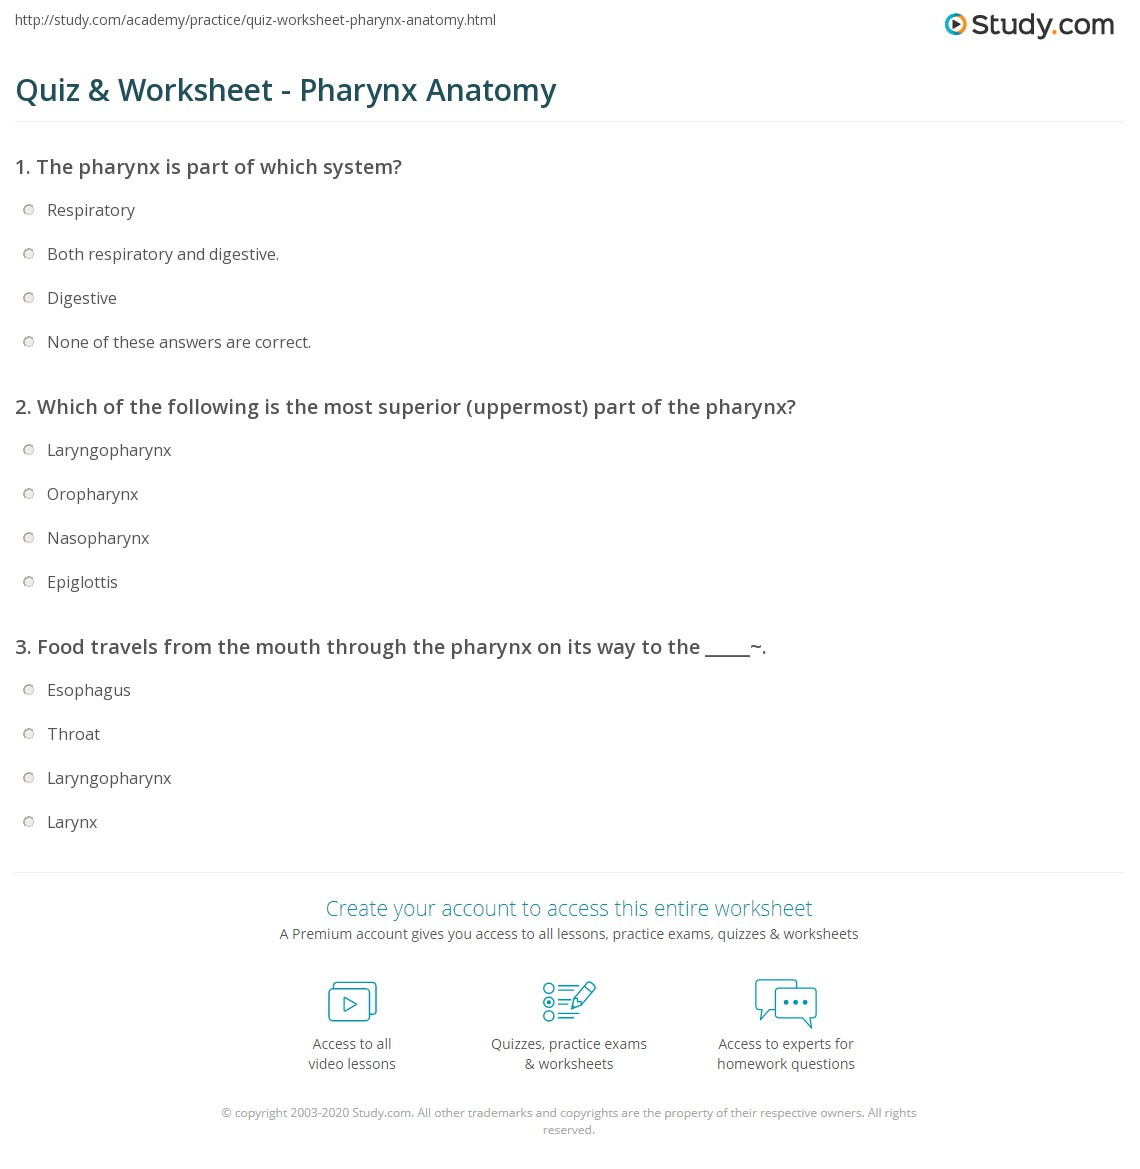 Quiz & Worksheet - Pharynx Anatomy | Study.com